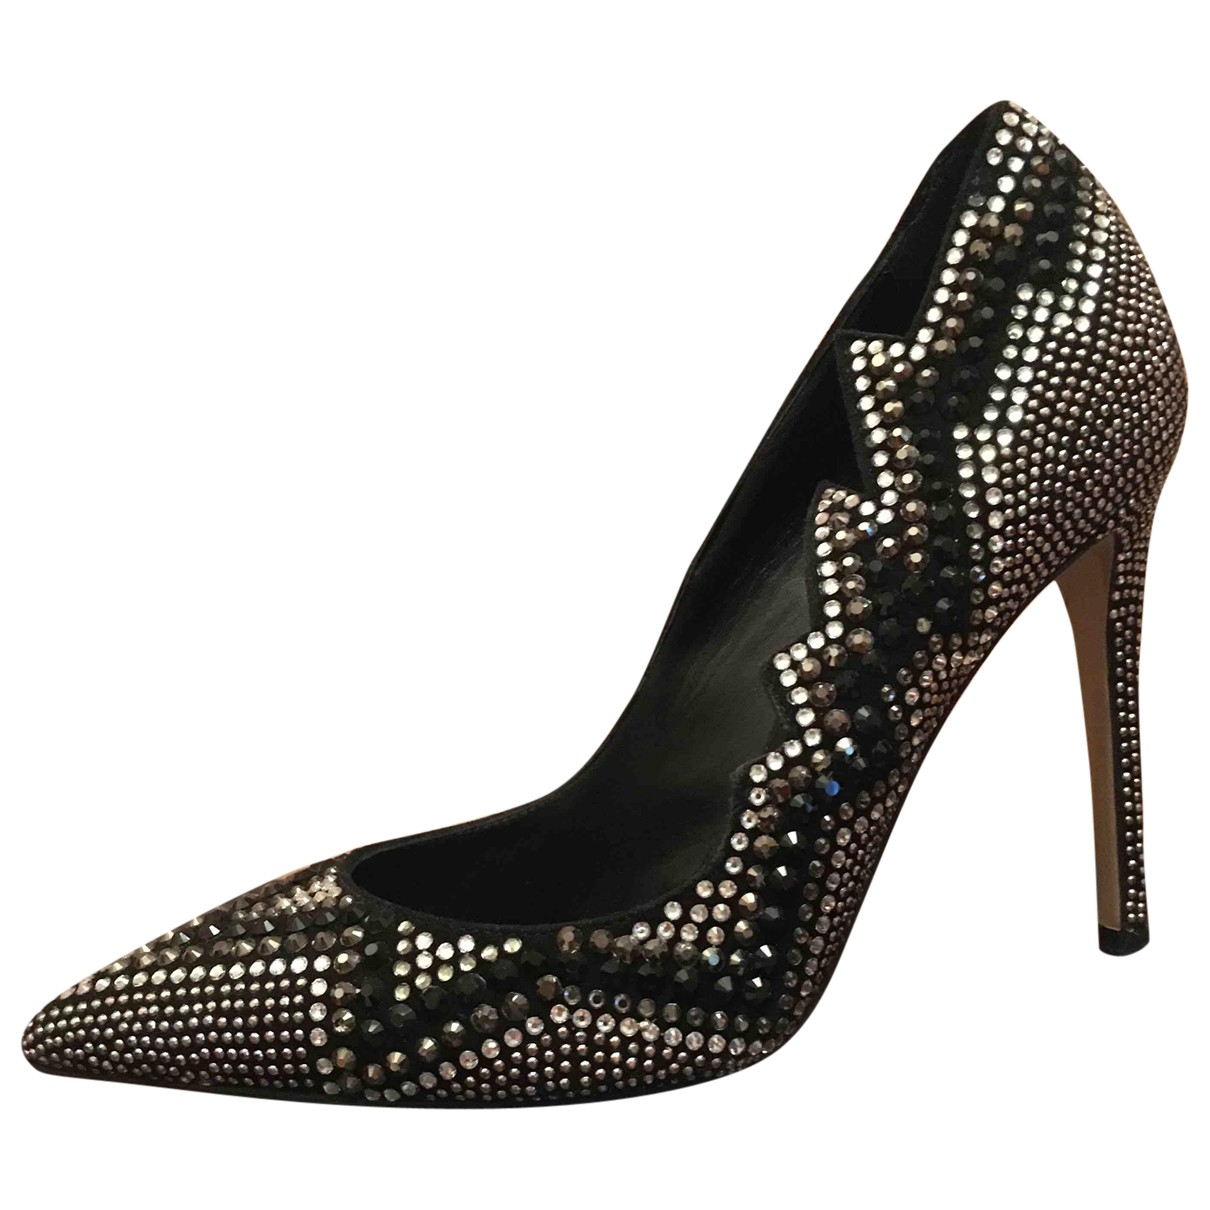 Le Silla \N Pumps in  Silber Mit Pailletten